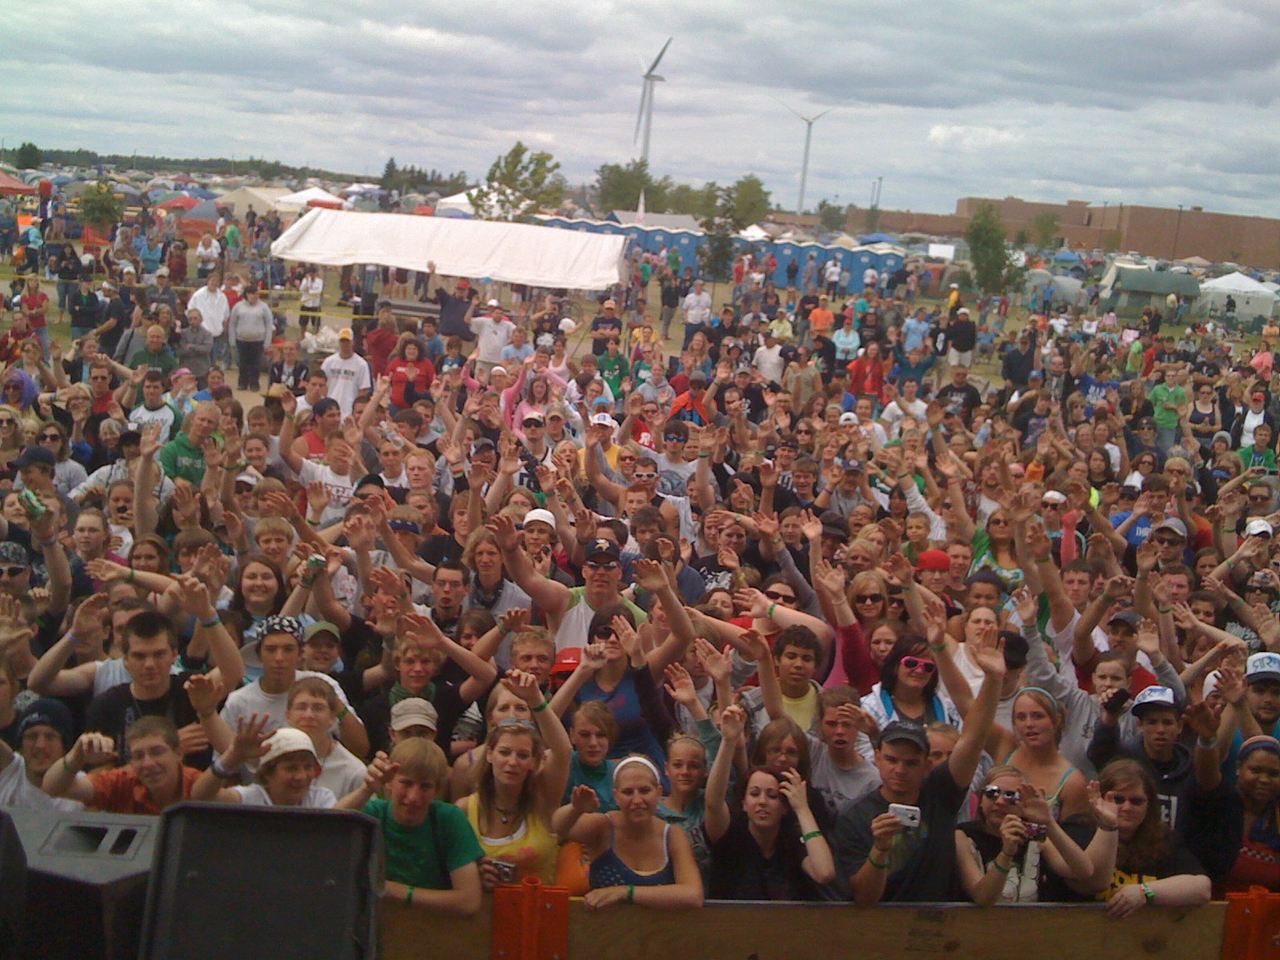 Rocked sonshine fest in Minnesota yesterday.. Actually cut a kids Mohawk off on stage during my freestyle.. Good times!